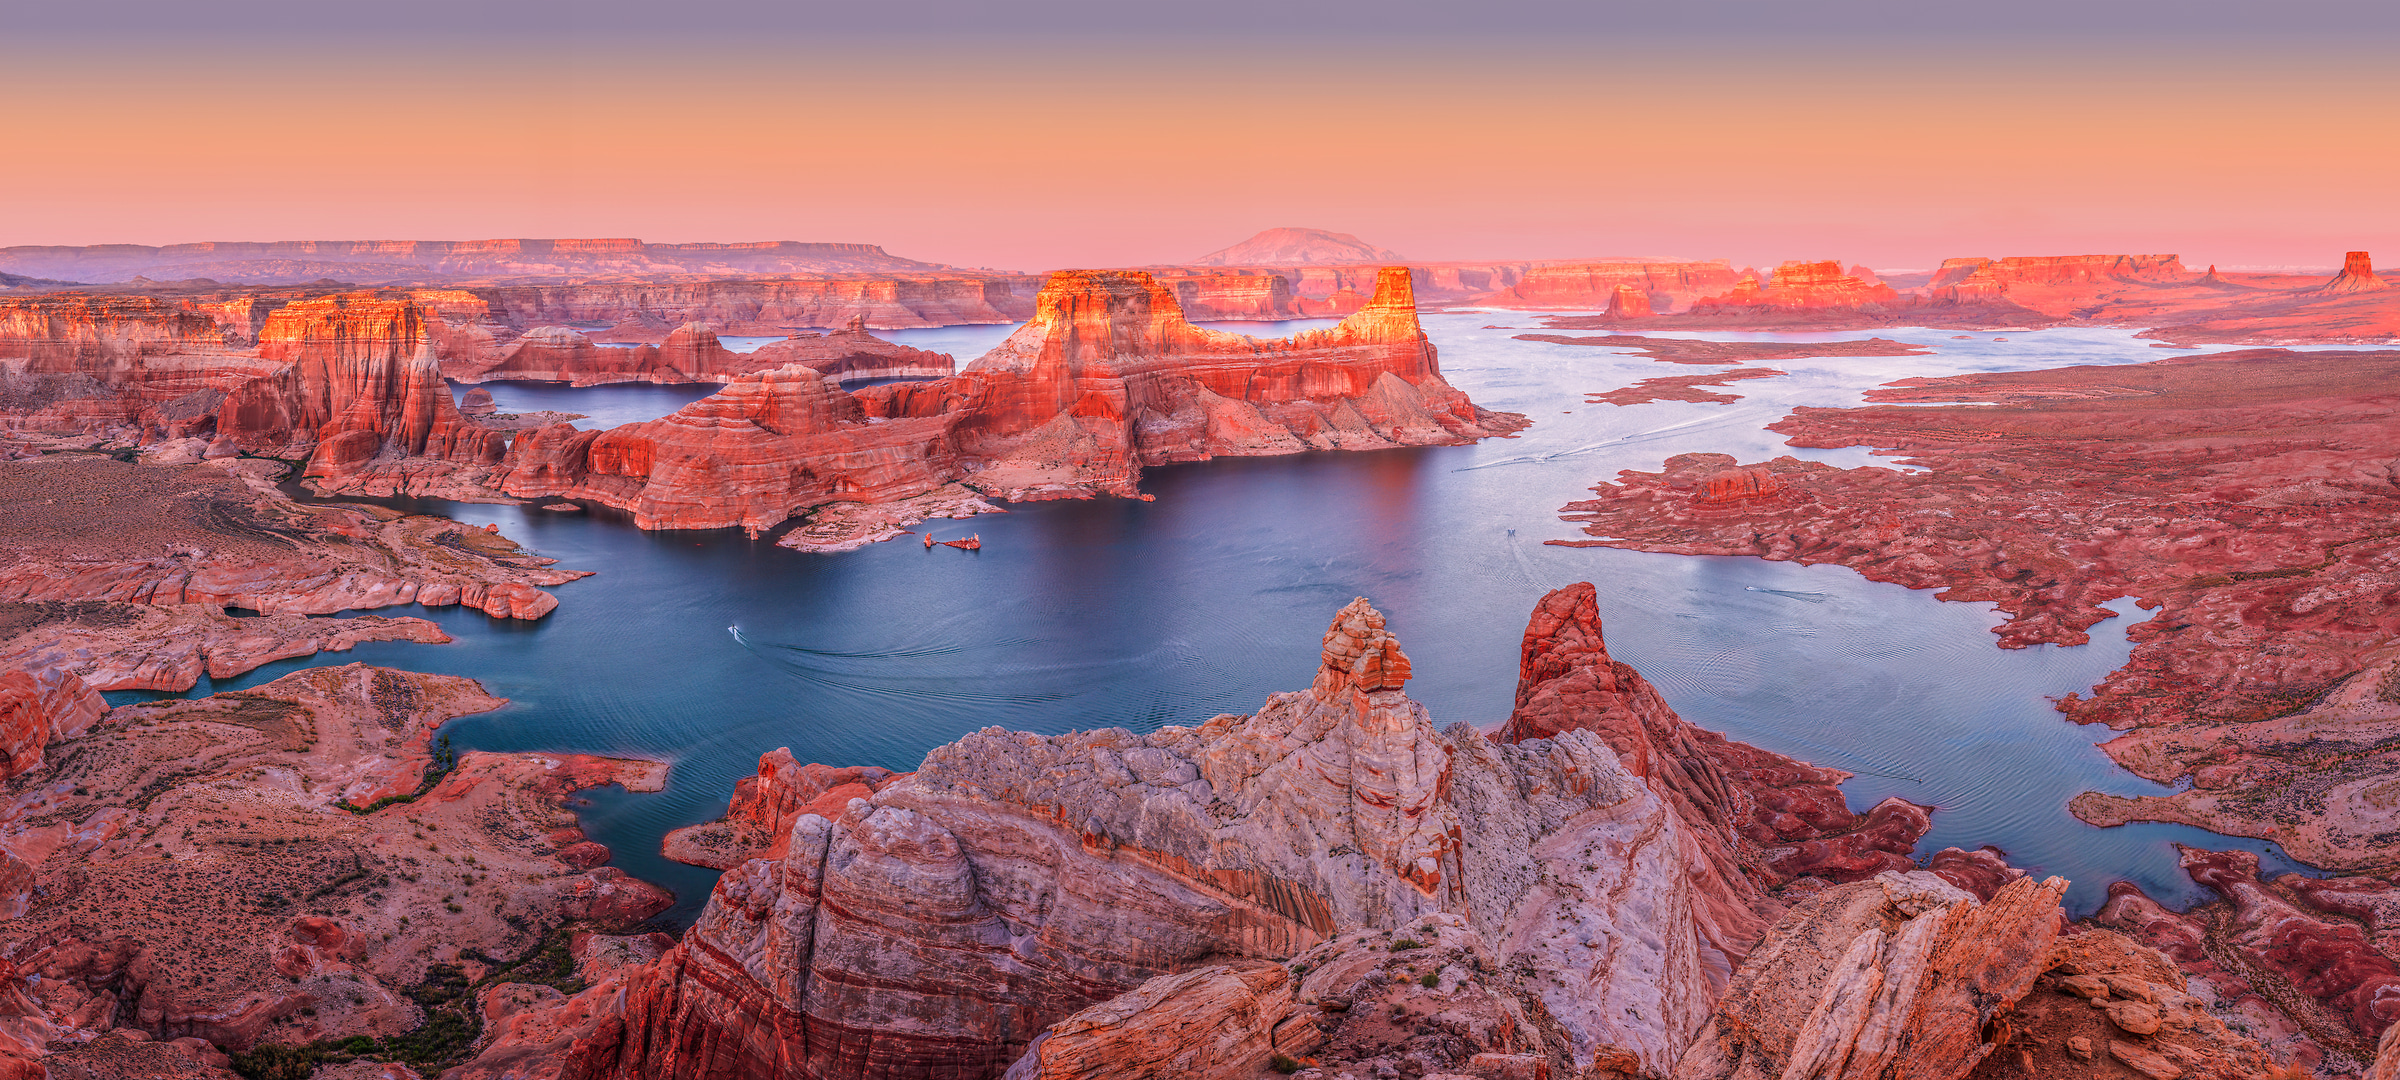 681 megapixels! A very high resolution, large-format VAST photo print of Lake Powell; fine art landscape photo created by Chris Collacott in Glen Canyon National Recreational Area, Utah